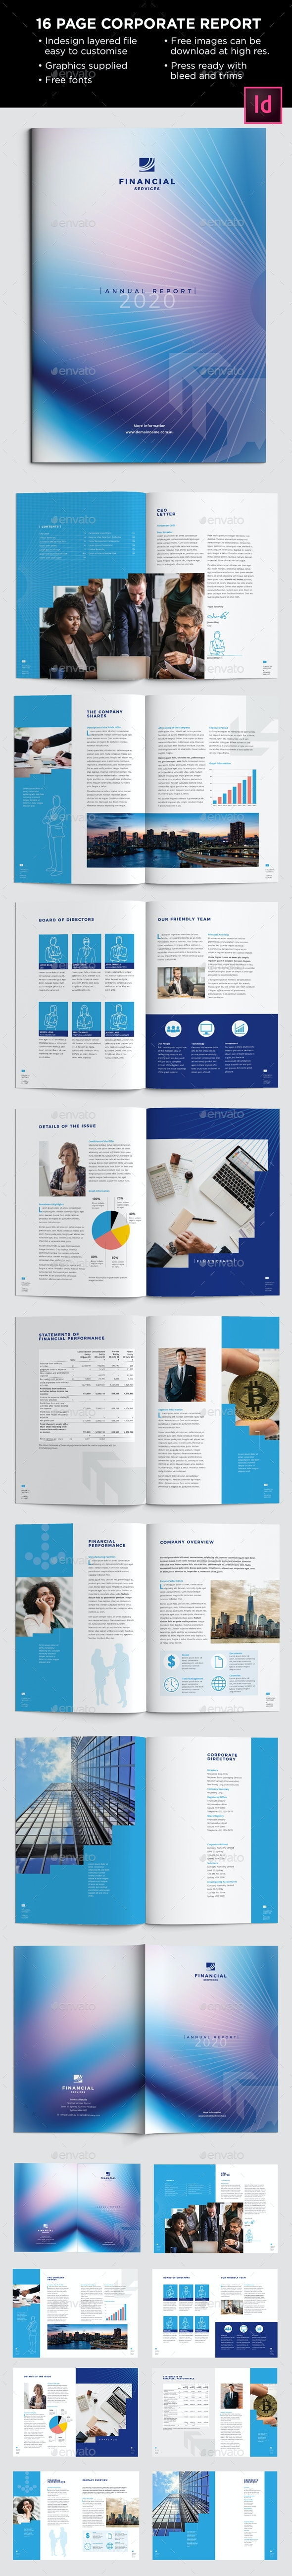 Corporate Brochure 16 Pages - Corporate Brochures